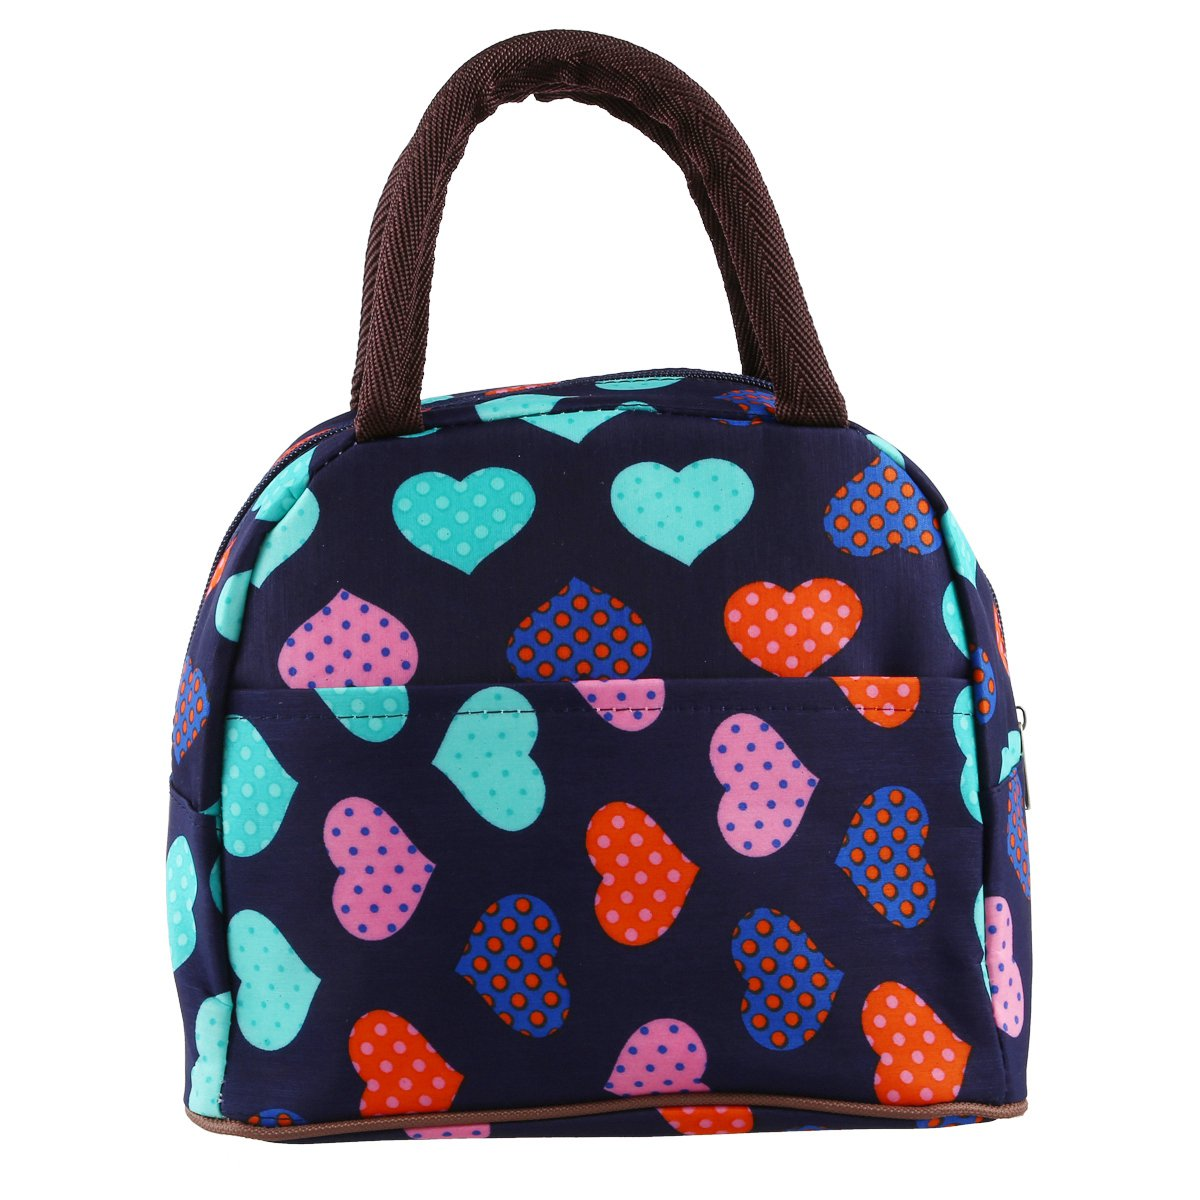 LJL Lunch Bag, Lovely Oxford Waterproof Canvas Lunch Box For Women Kids and Adults